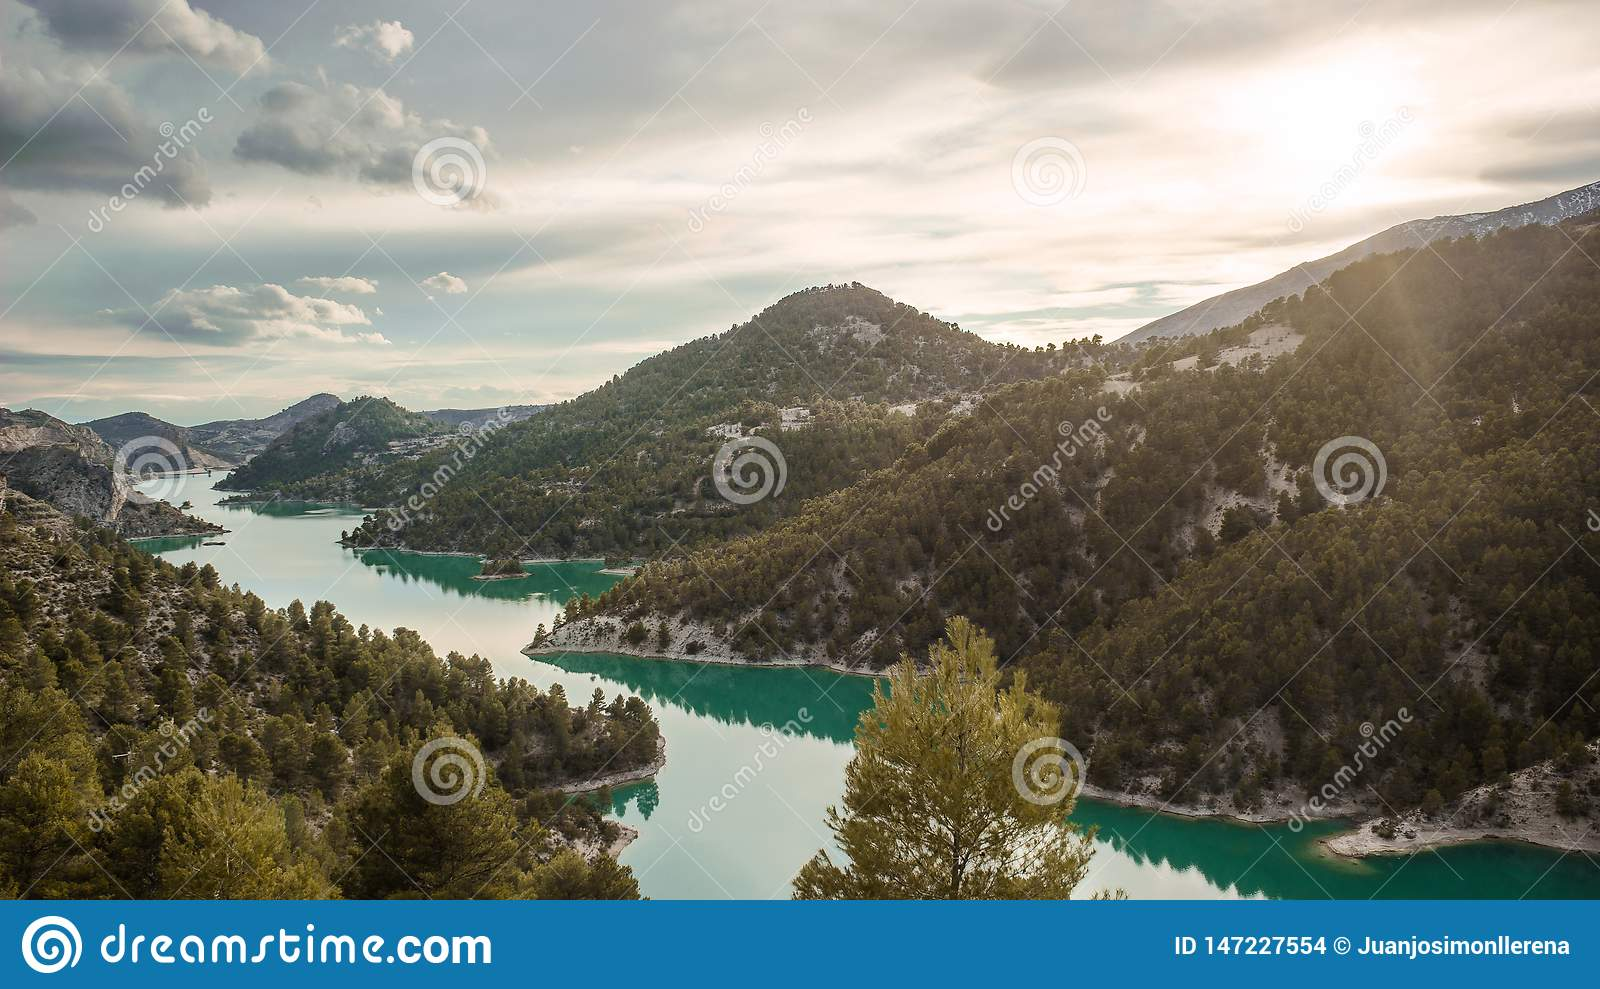 Stunning view of the lake El Portillo with the sun shinning above the mountains. Fantasy land